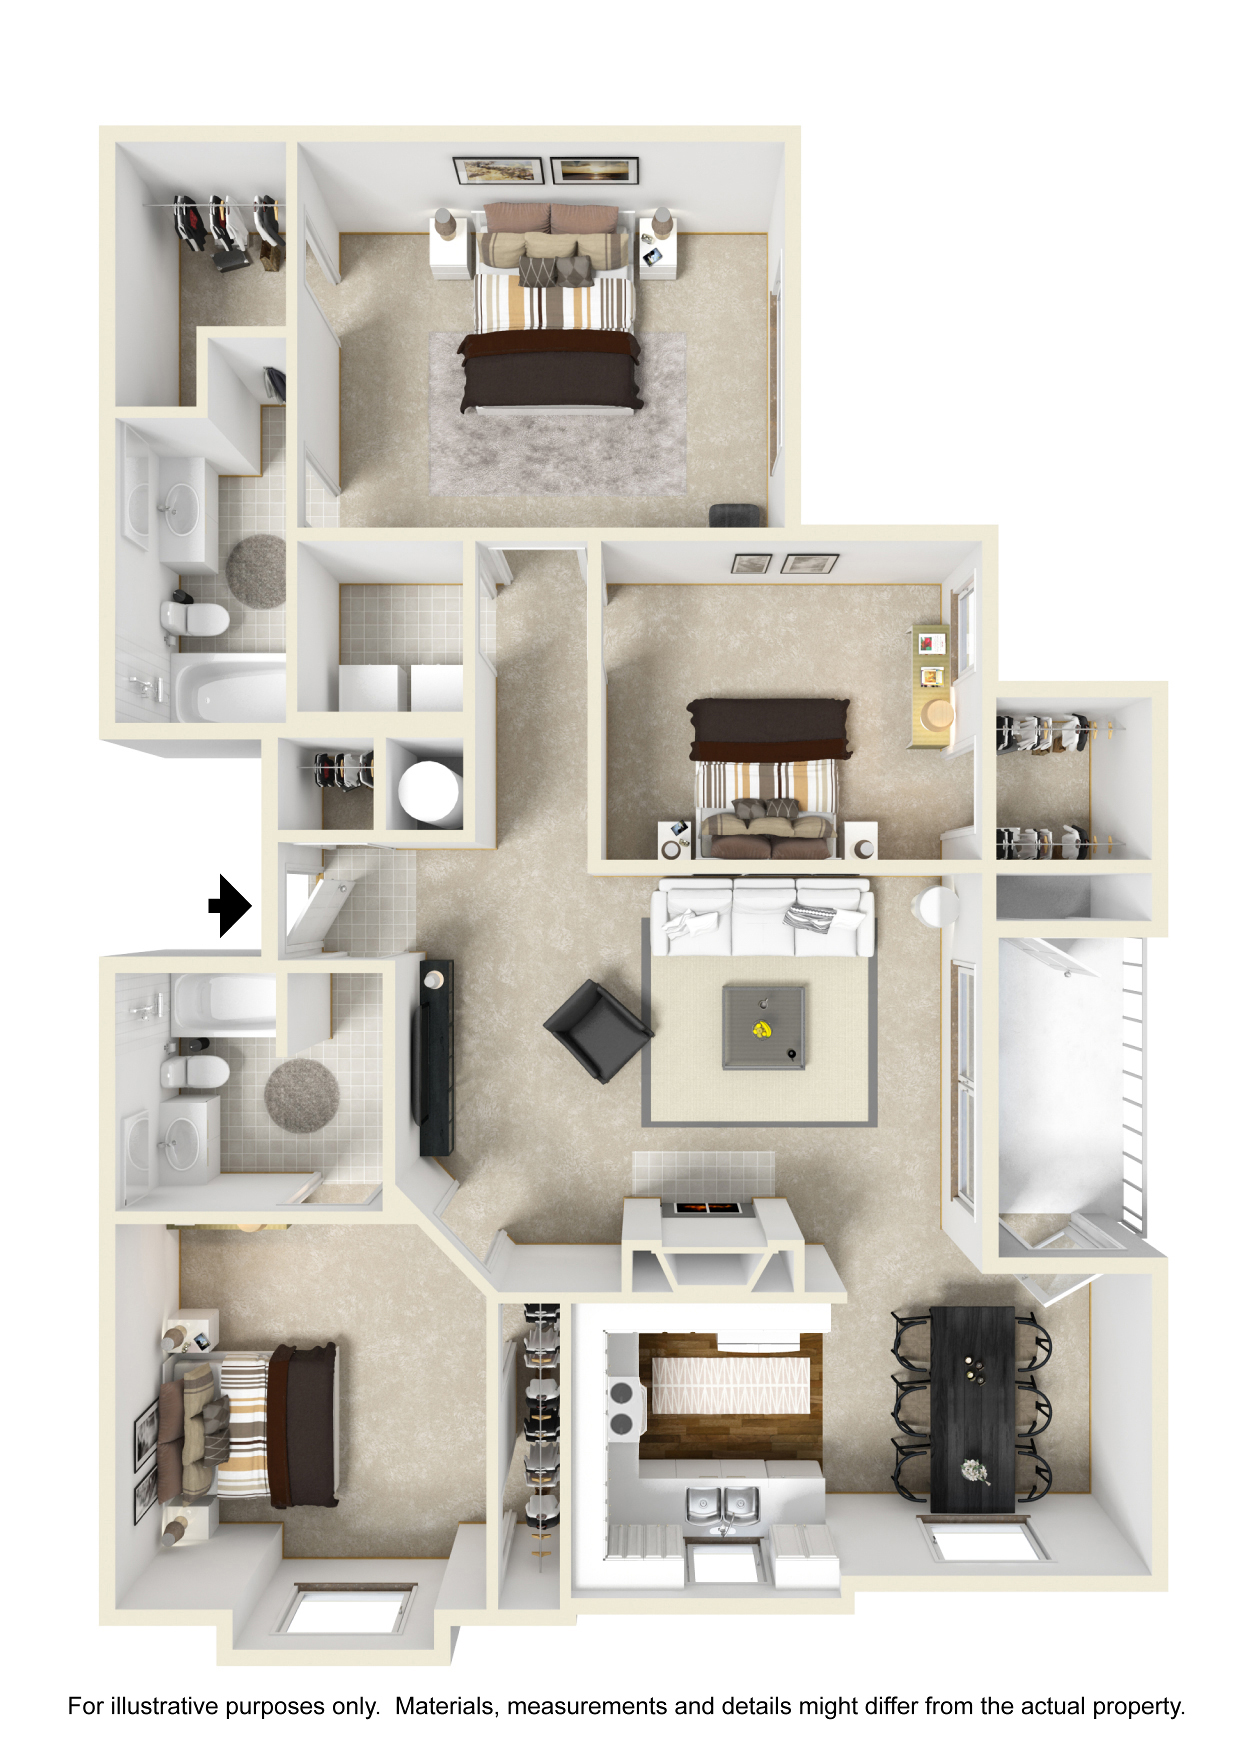 3 Bedroom Apartments Tampa: Crowne At The Summit: Stylish